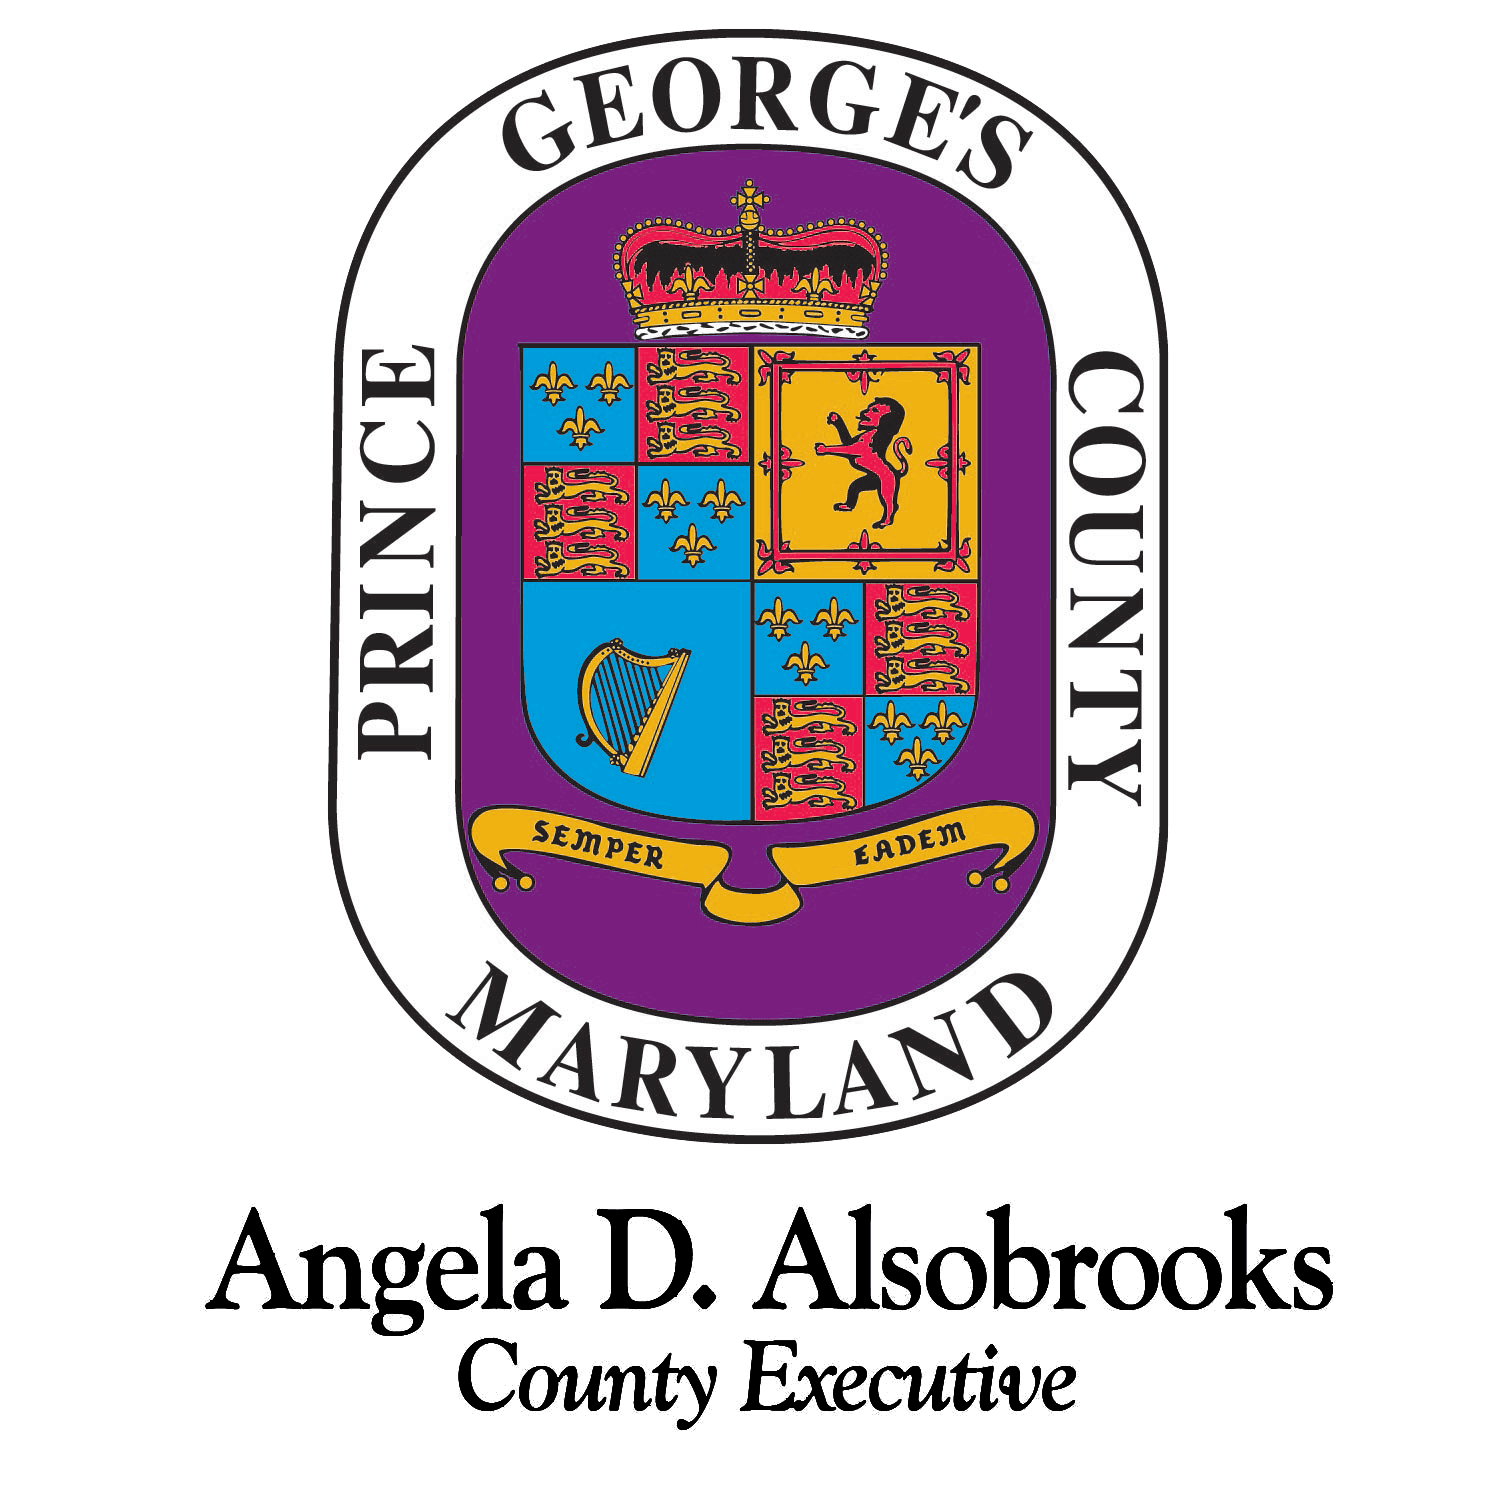 County Seal - Angela Alsobrooks